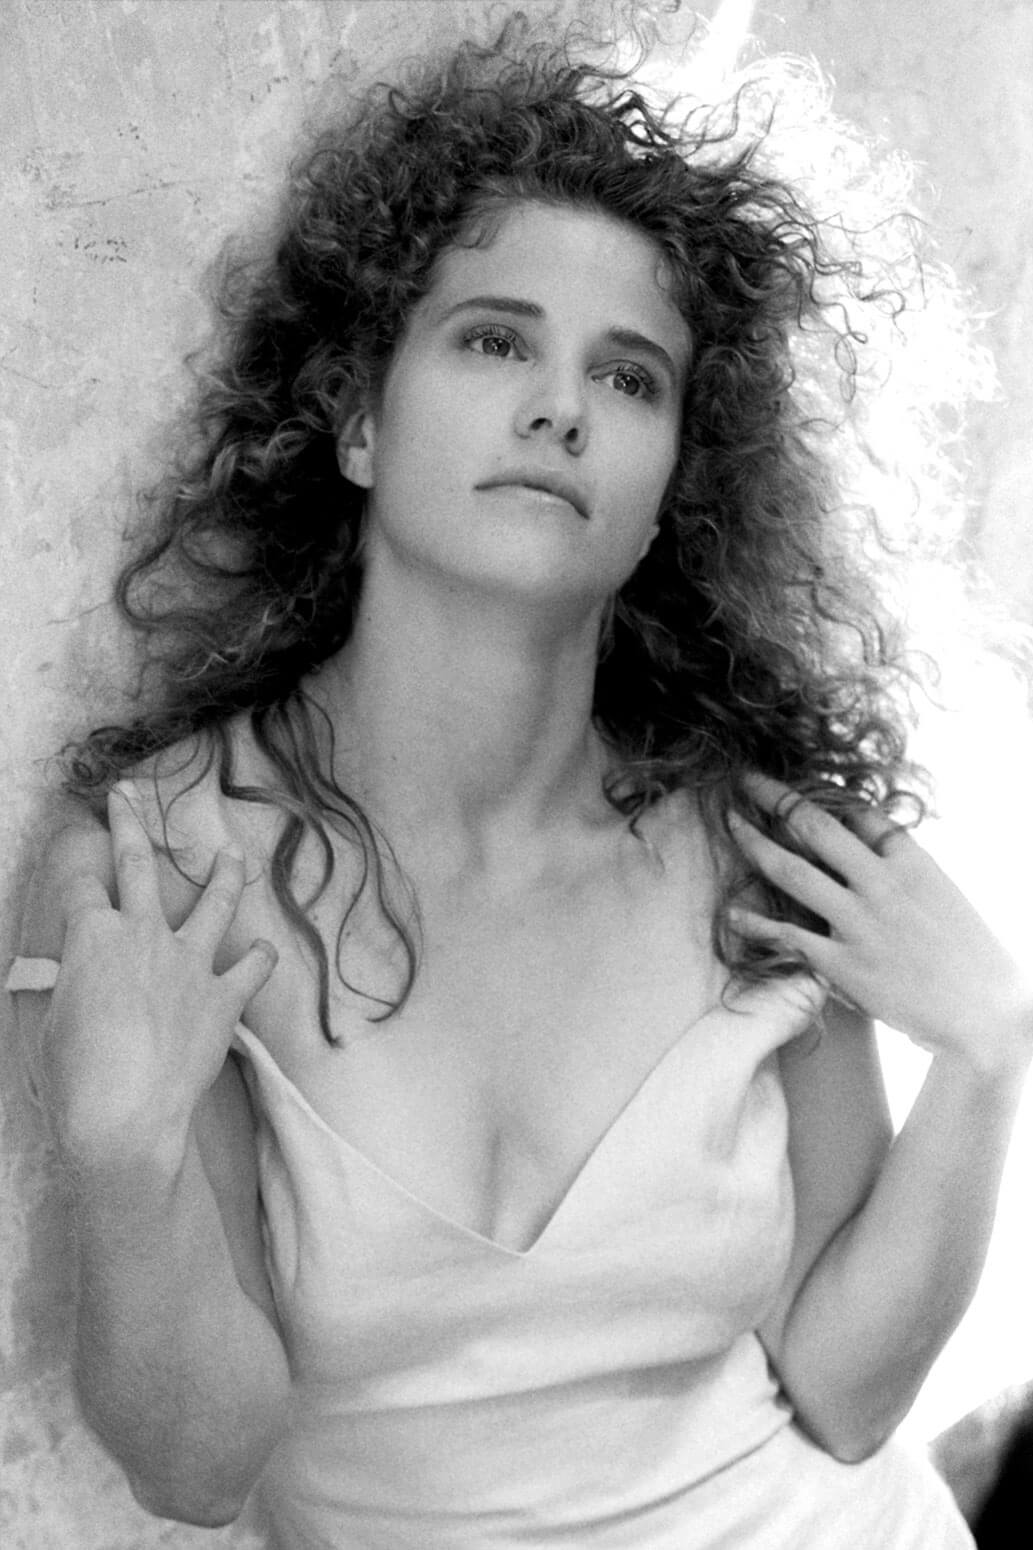 60+ Hot Pictures Of Nancy Travis Will Make You Drool For